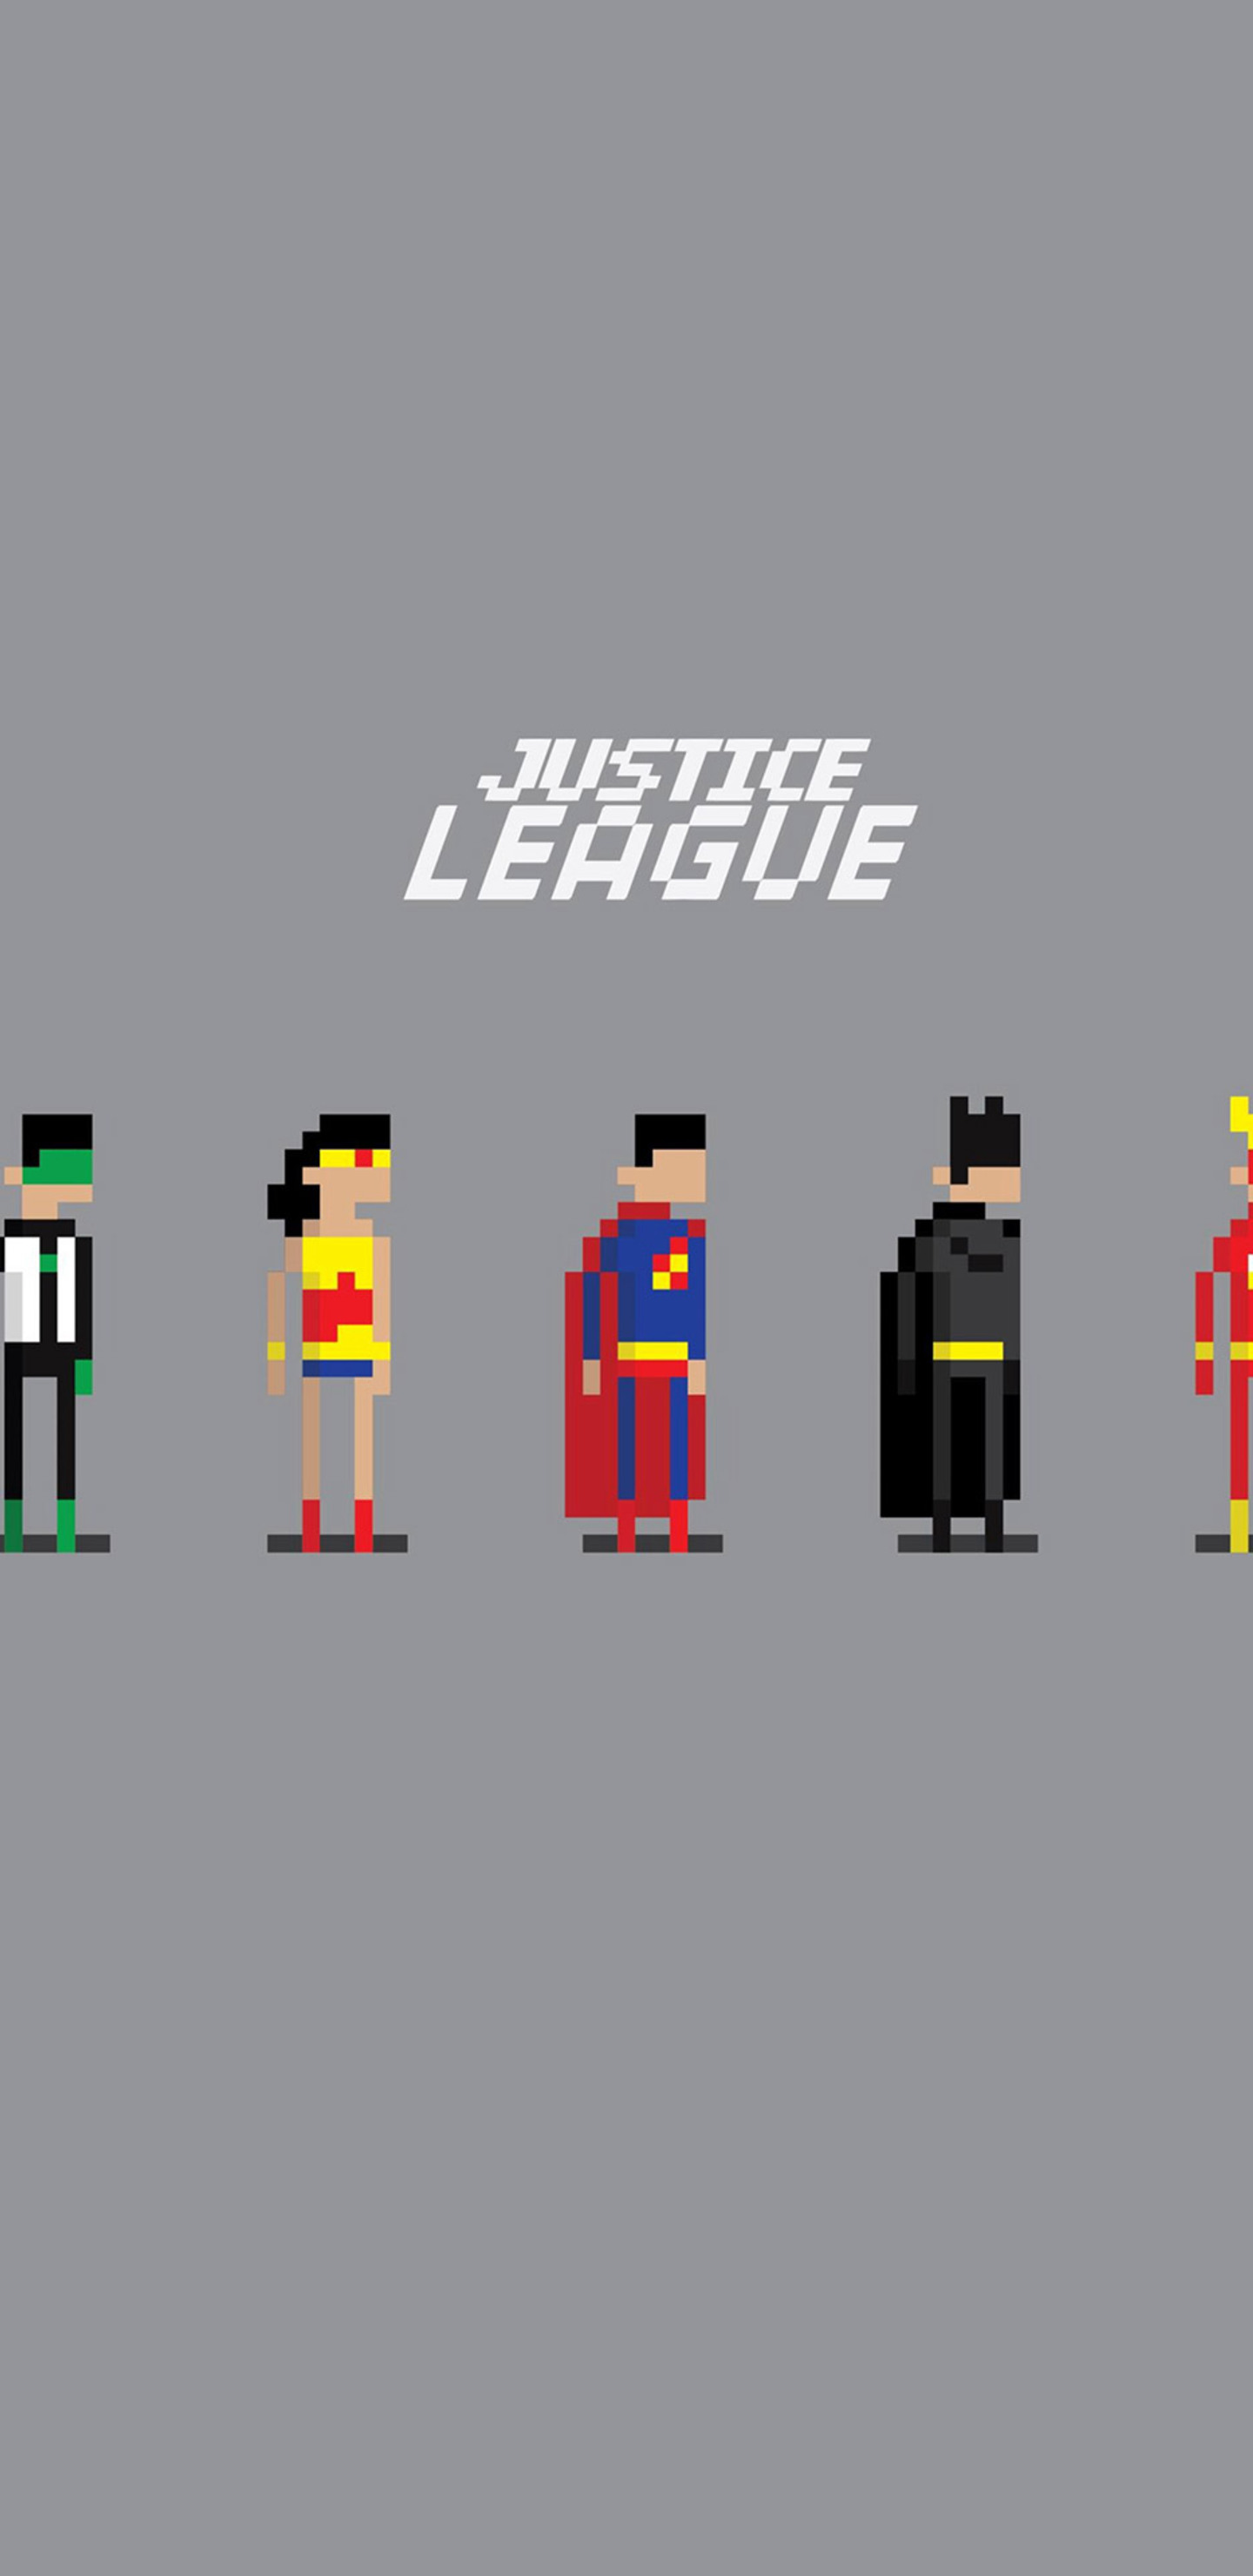 justice-league-8-bit-sd.jpg